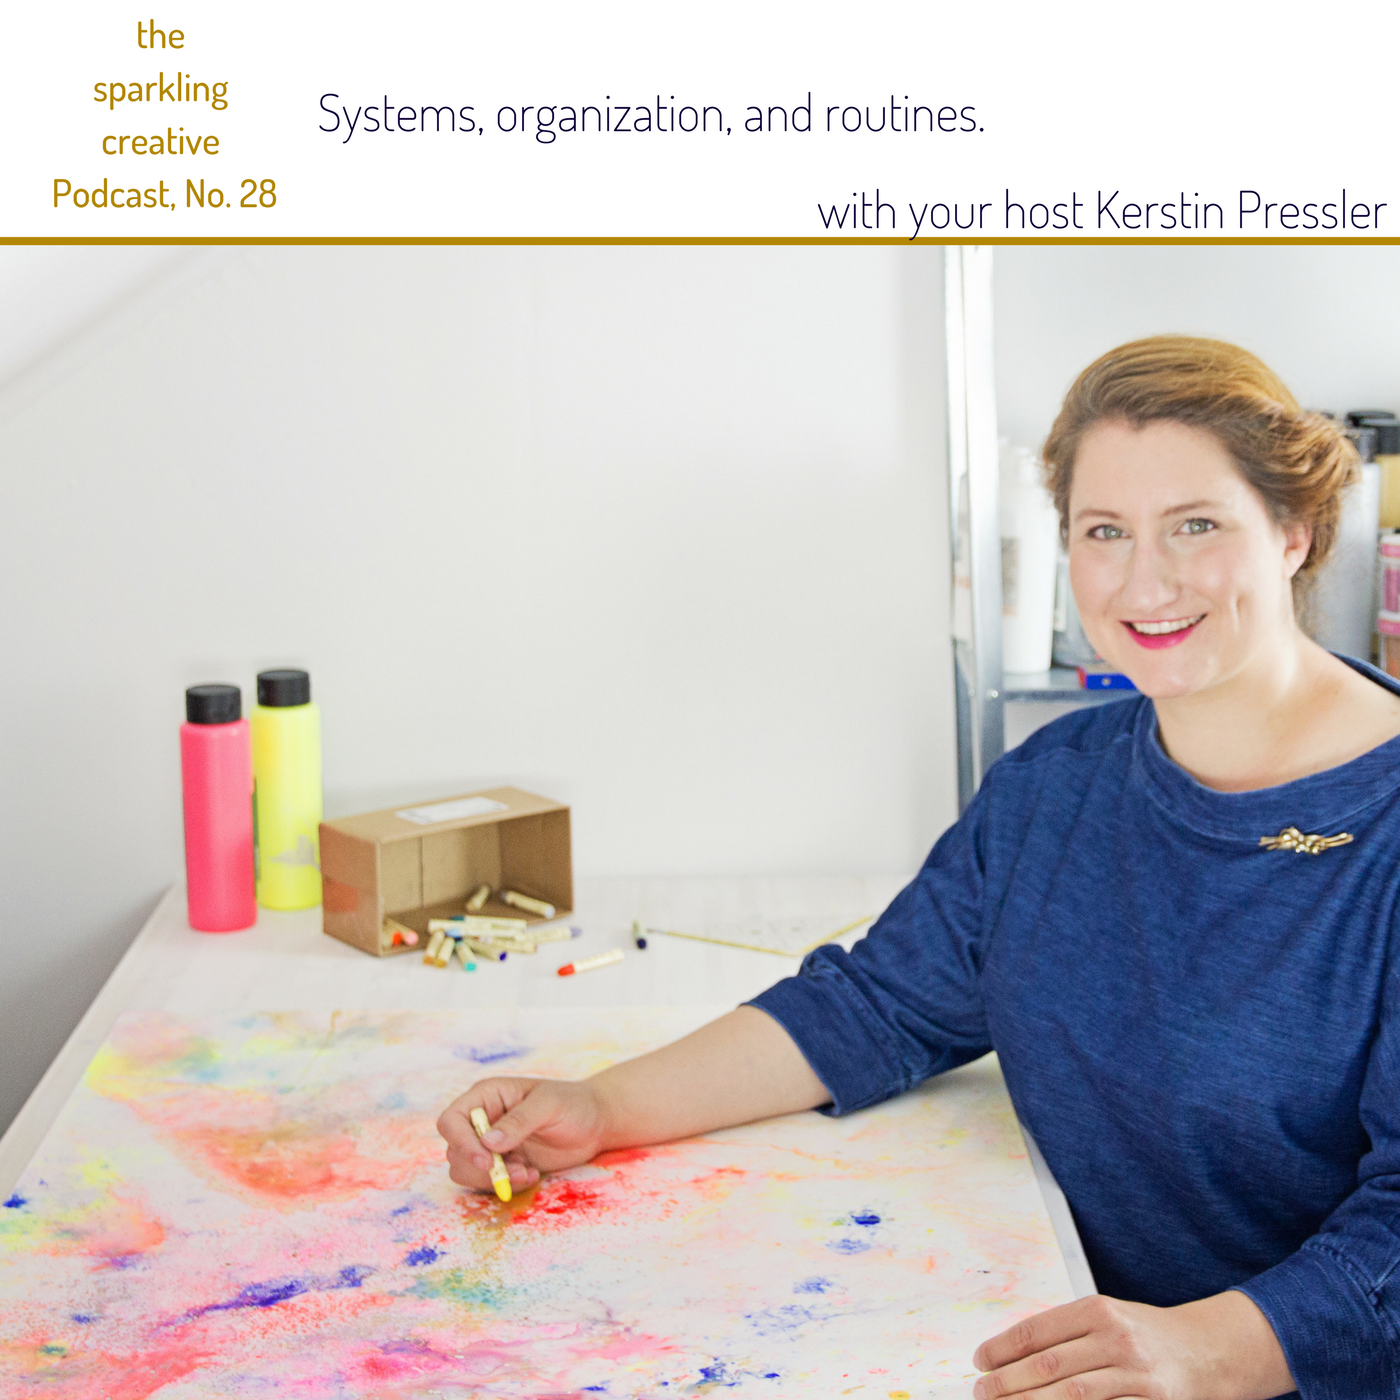 The sparkling creative Podcast No. 28. Systems, Organization and Routines.